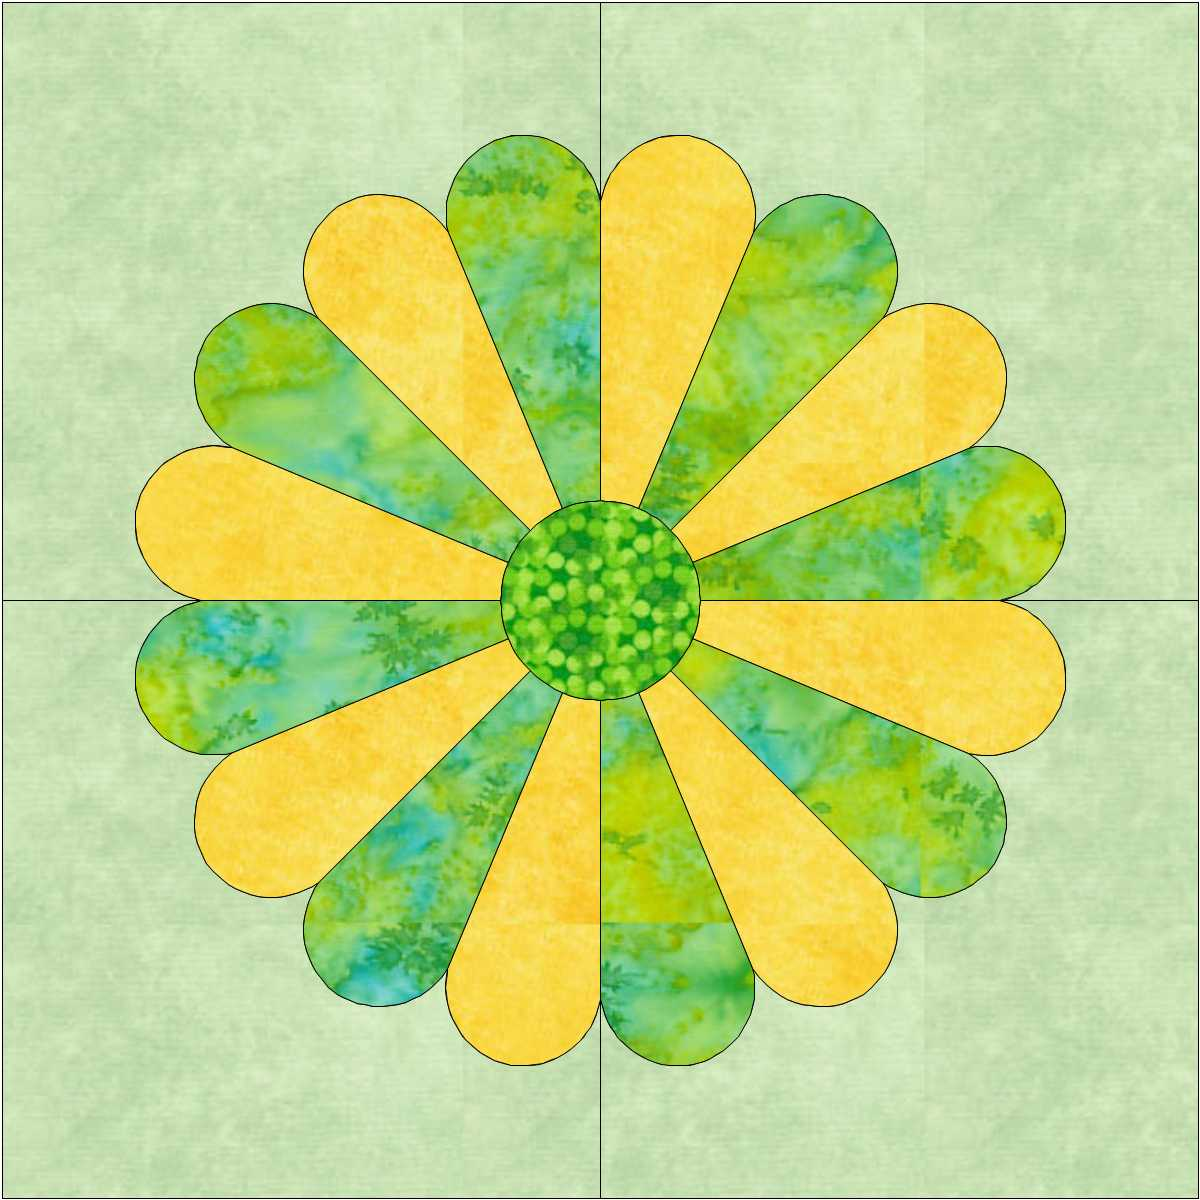 Art Concepts For Quilting Balance Part 1 Kathy K Wylie